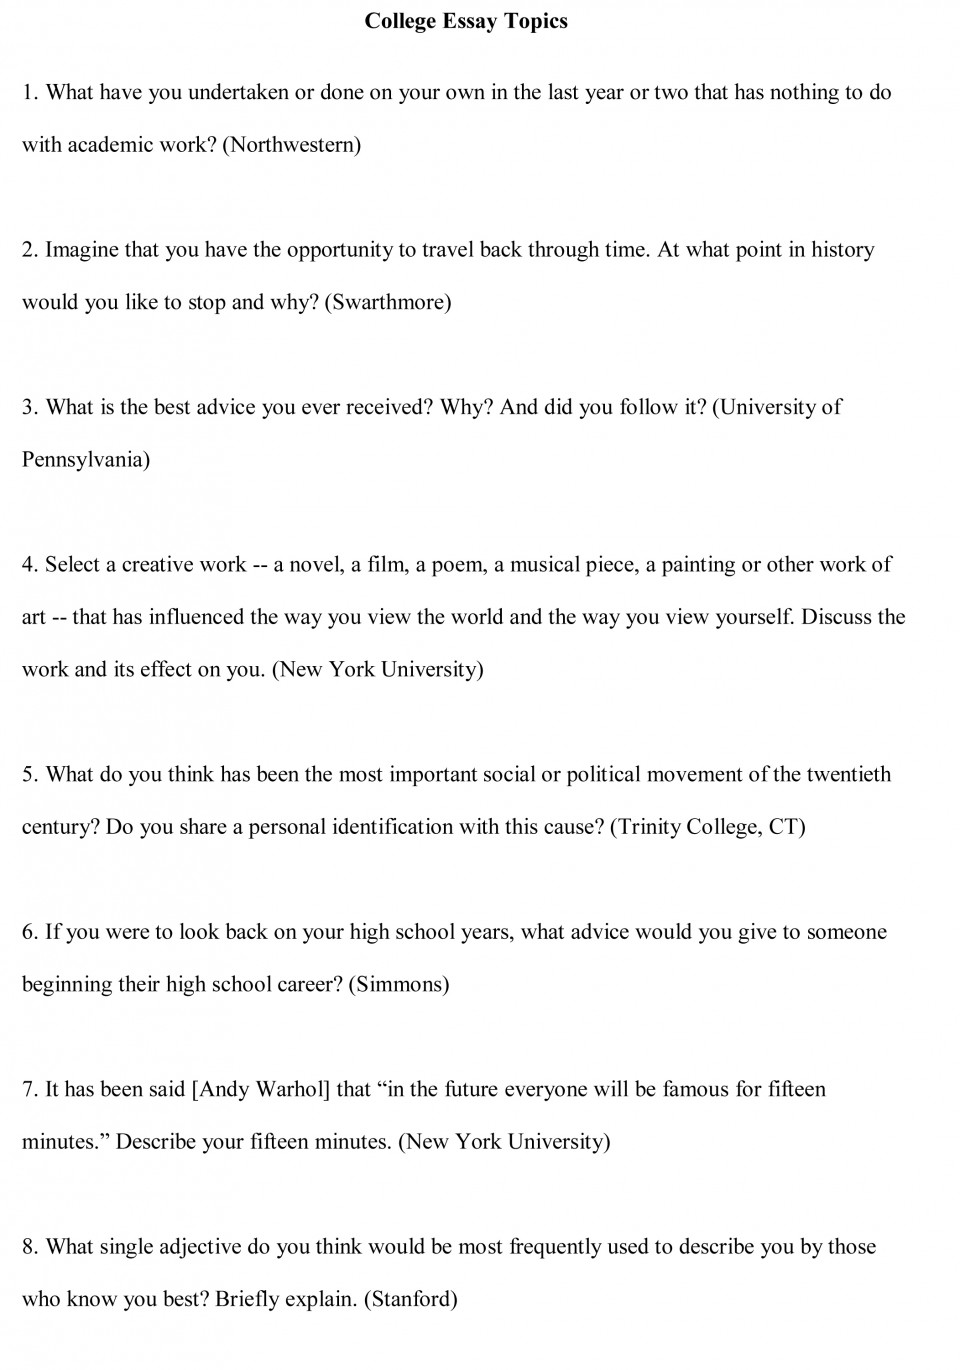 024 College Essay Topics Free Sample1 Example Dreaded Informative Ideas Rubric 6th Grade 960